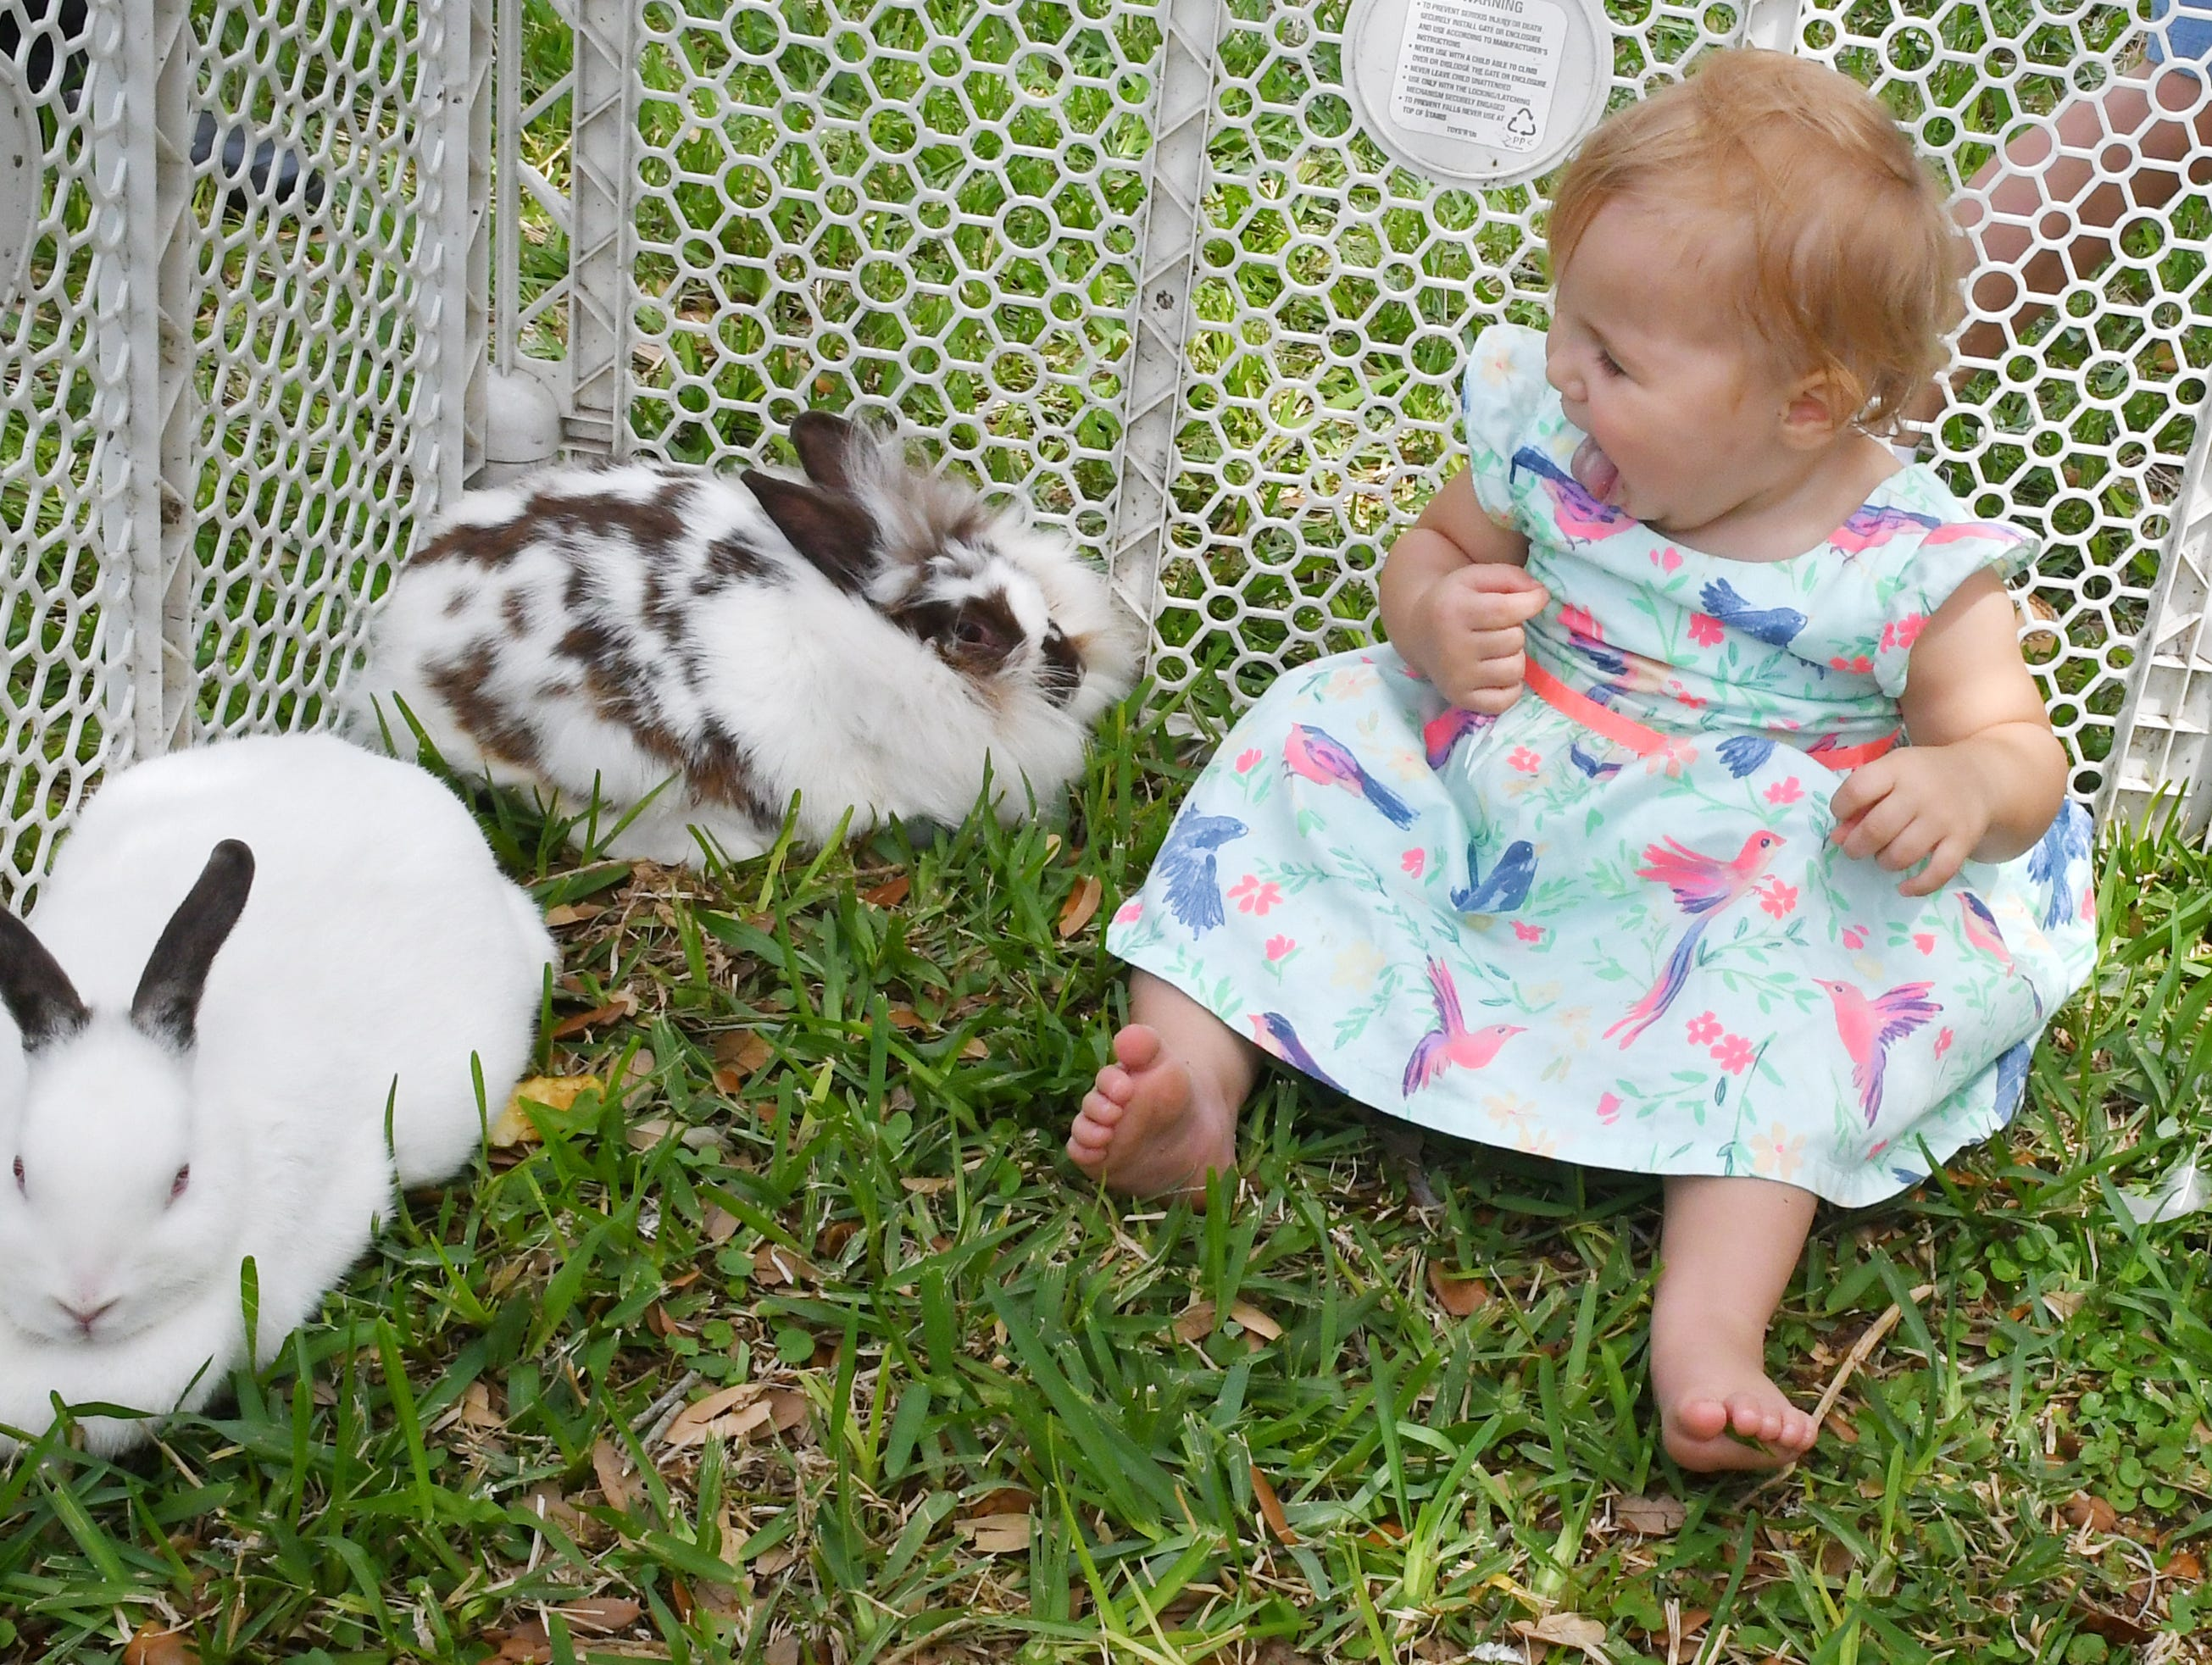 16 month old Hazel Grogan meets some bunnies. Eastminster Presbyterian Church held a free Palm Sunday Funday following a traditional morning service. Activities included several animals from Cox Farms, Jazz music by the Ron Teixeira Trio, crafts, food, egg hunts, and  more. This Indialantic church, which is over 75 years old, will hold several series on Easter Sunday.